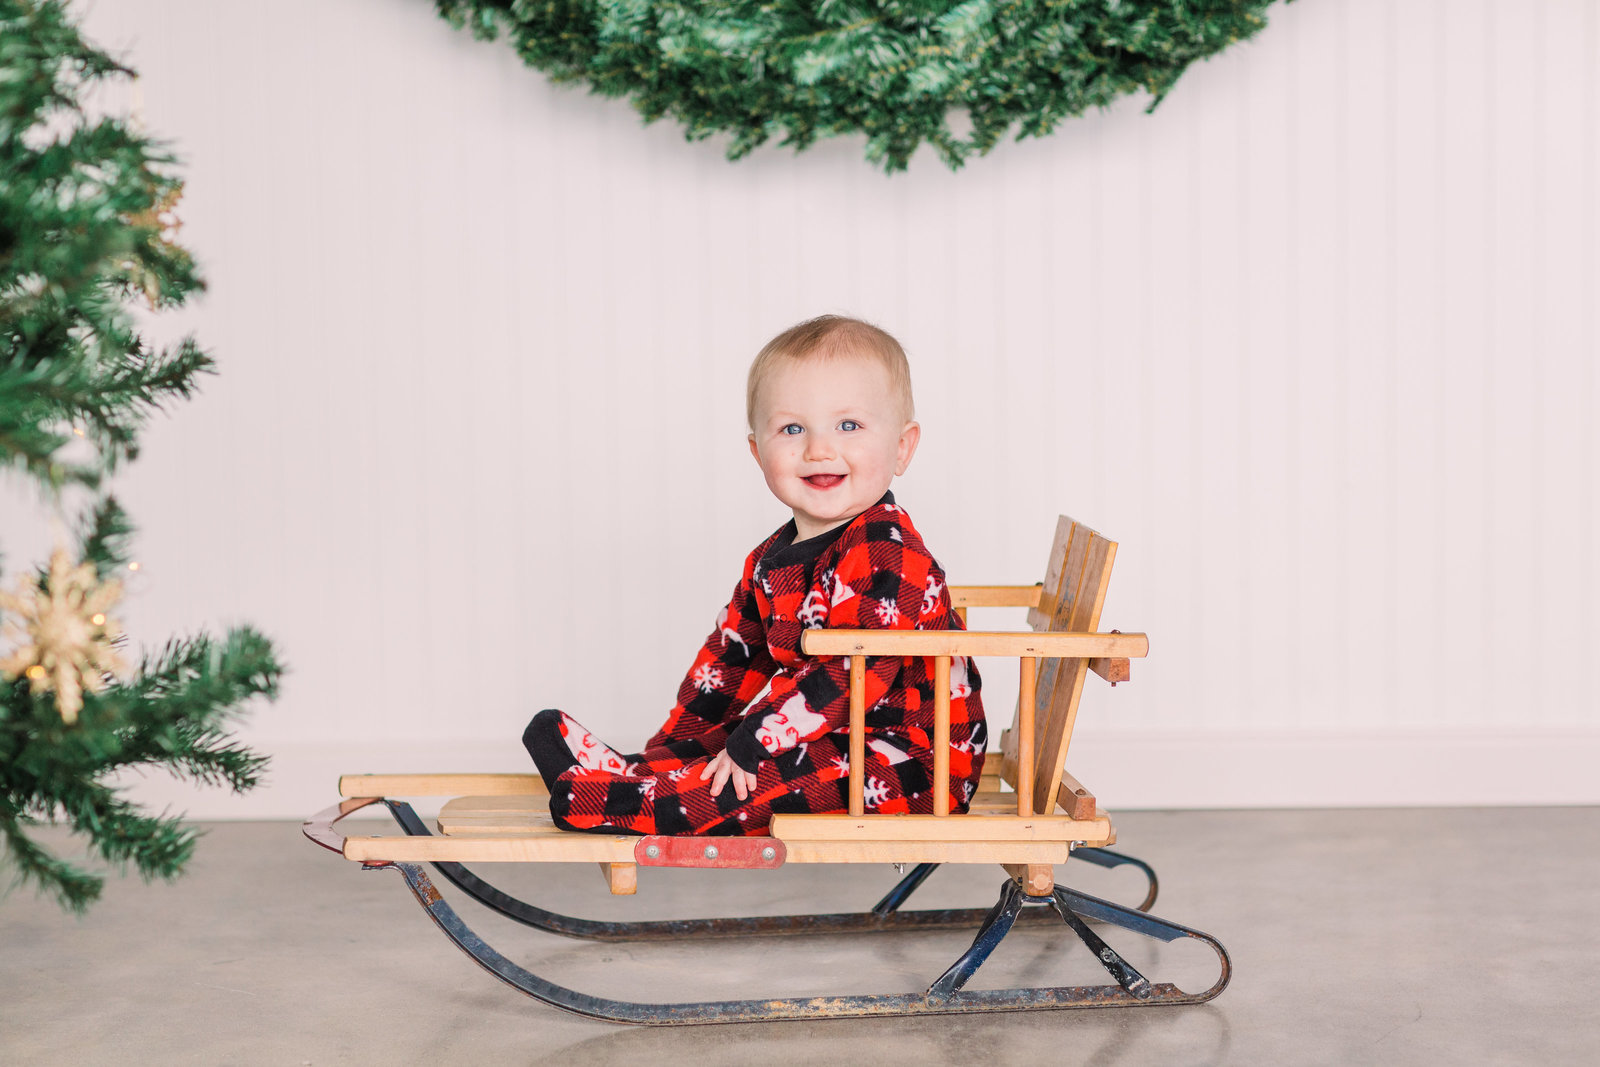 McGraw-Christmas-Jackelynn-Noel-Photography-9